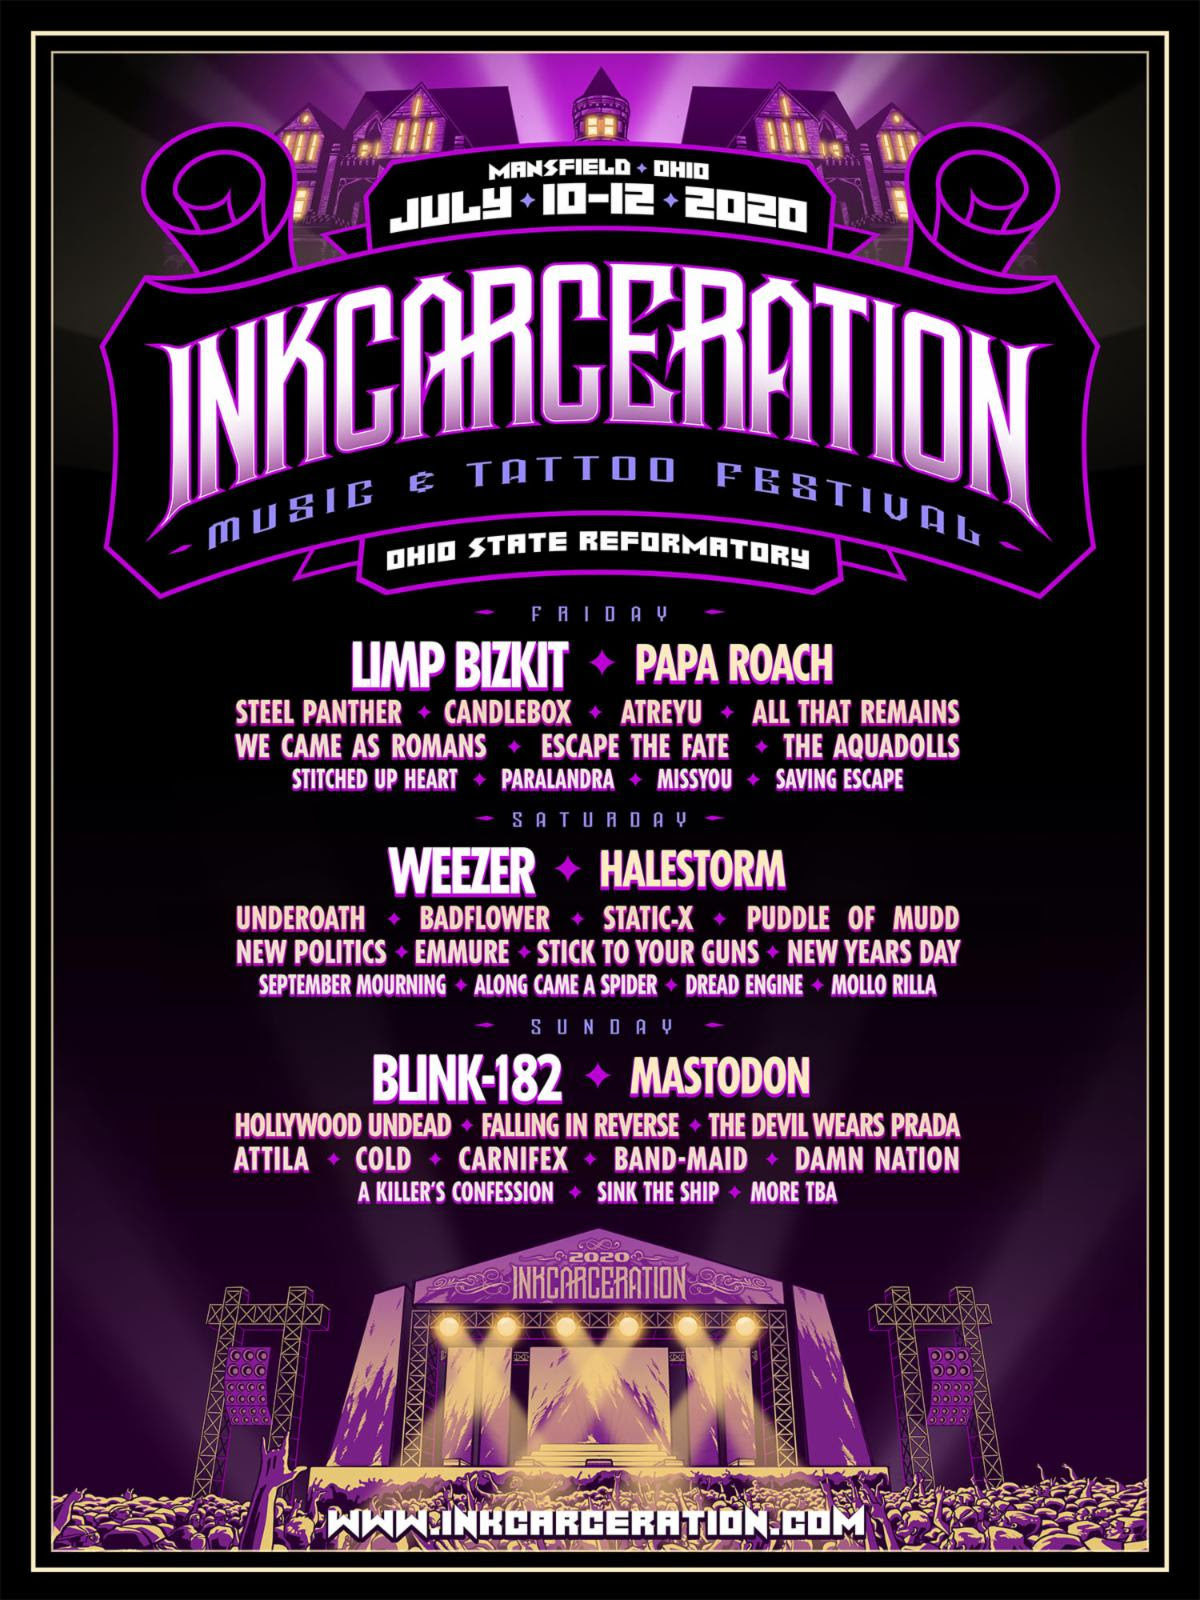 Third Annual INKCARCERATION Music and Tattoo Festival Announces Daily Lineups